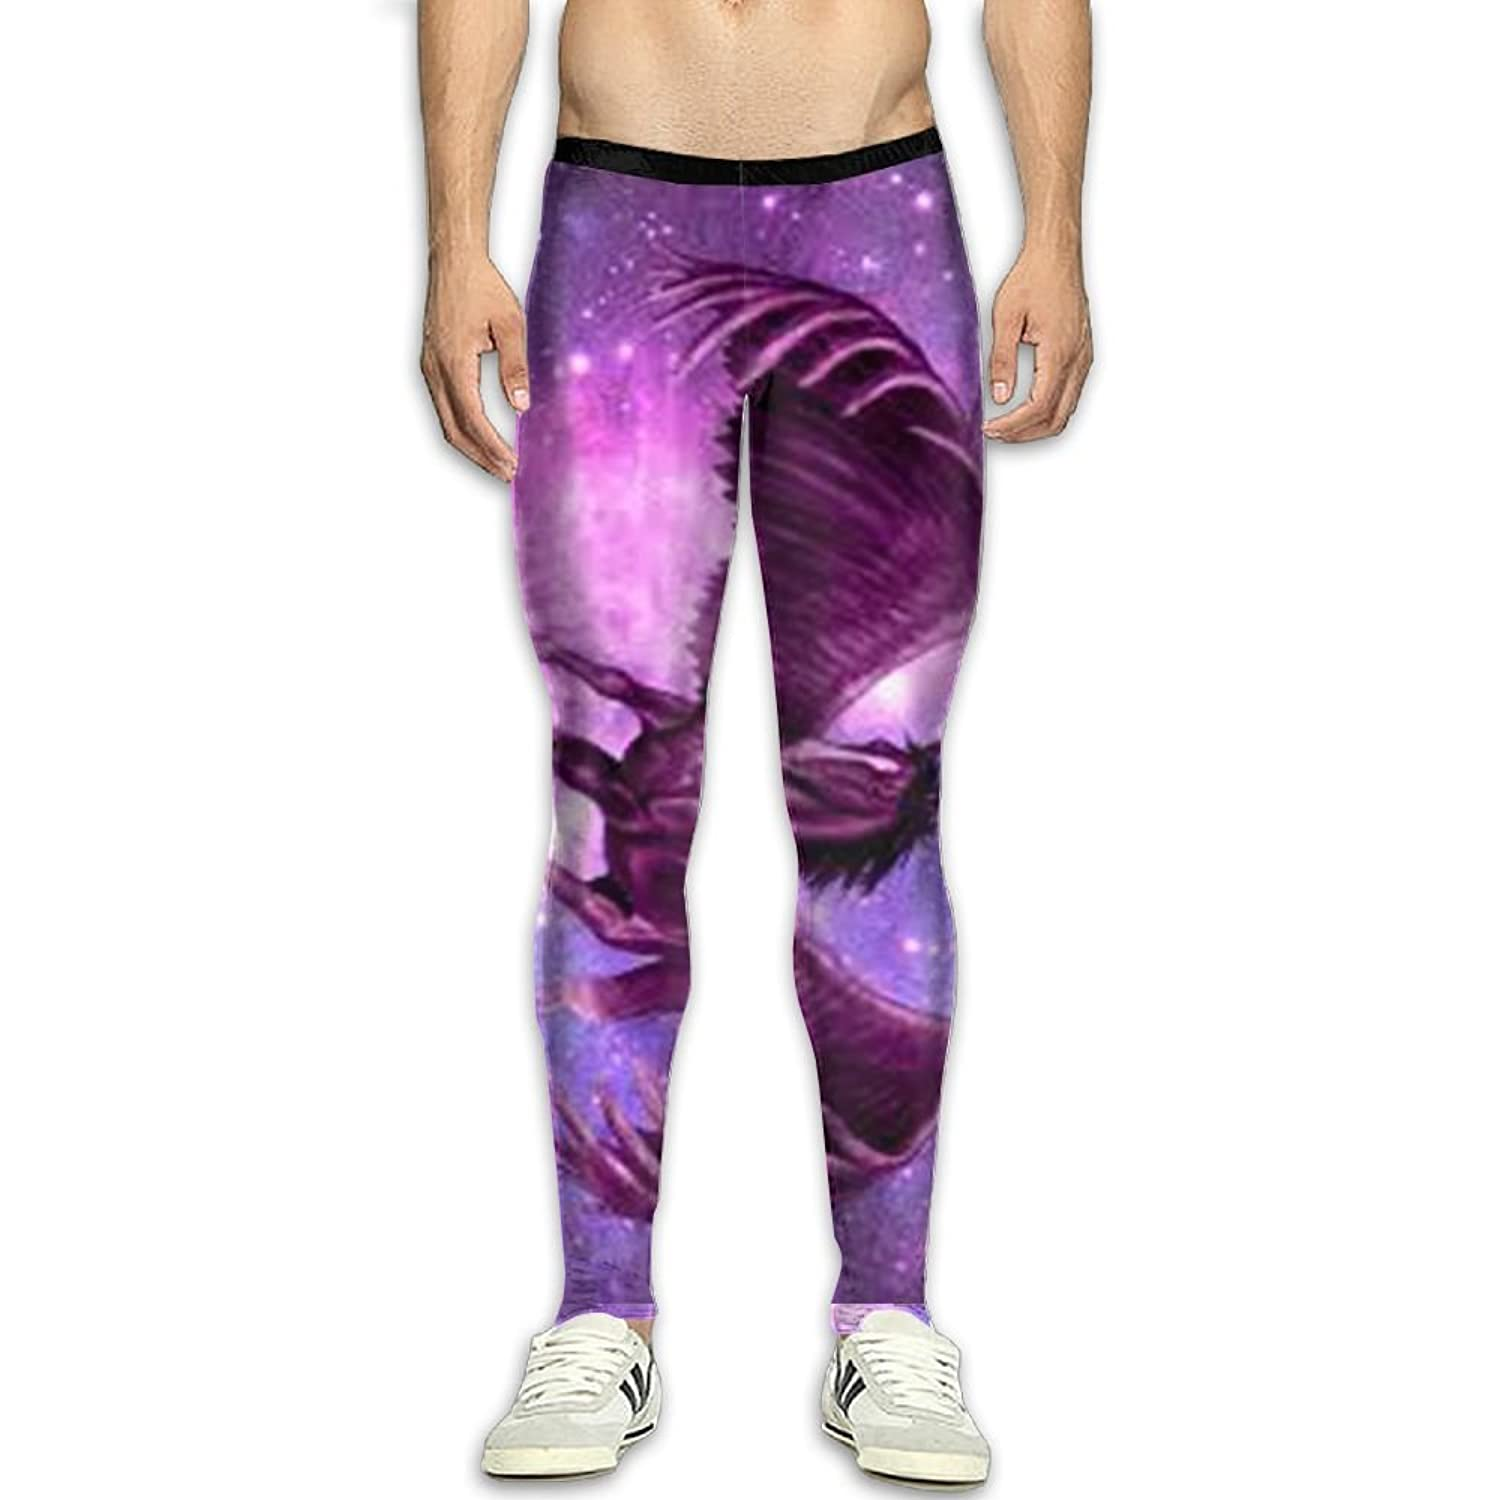 a79d28518e JJP1CO Men's Compression Pants Pegasus 3D Print Baselayer Cool Dry Sports  Thermal Tights Running Fitness